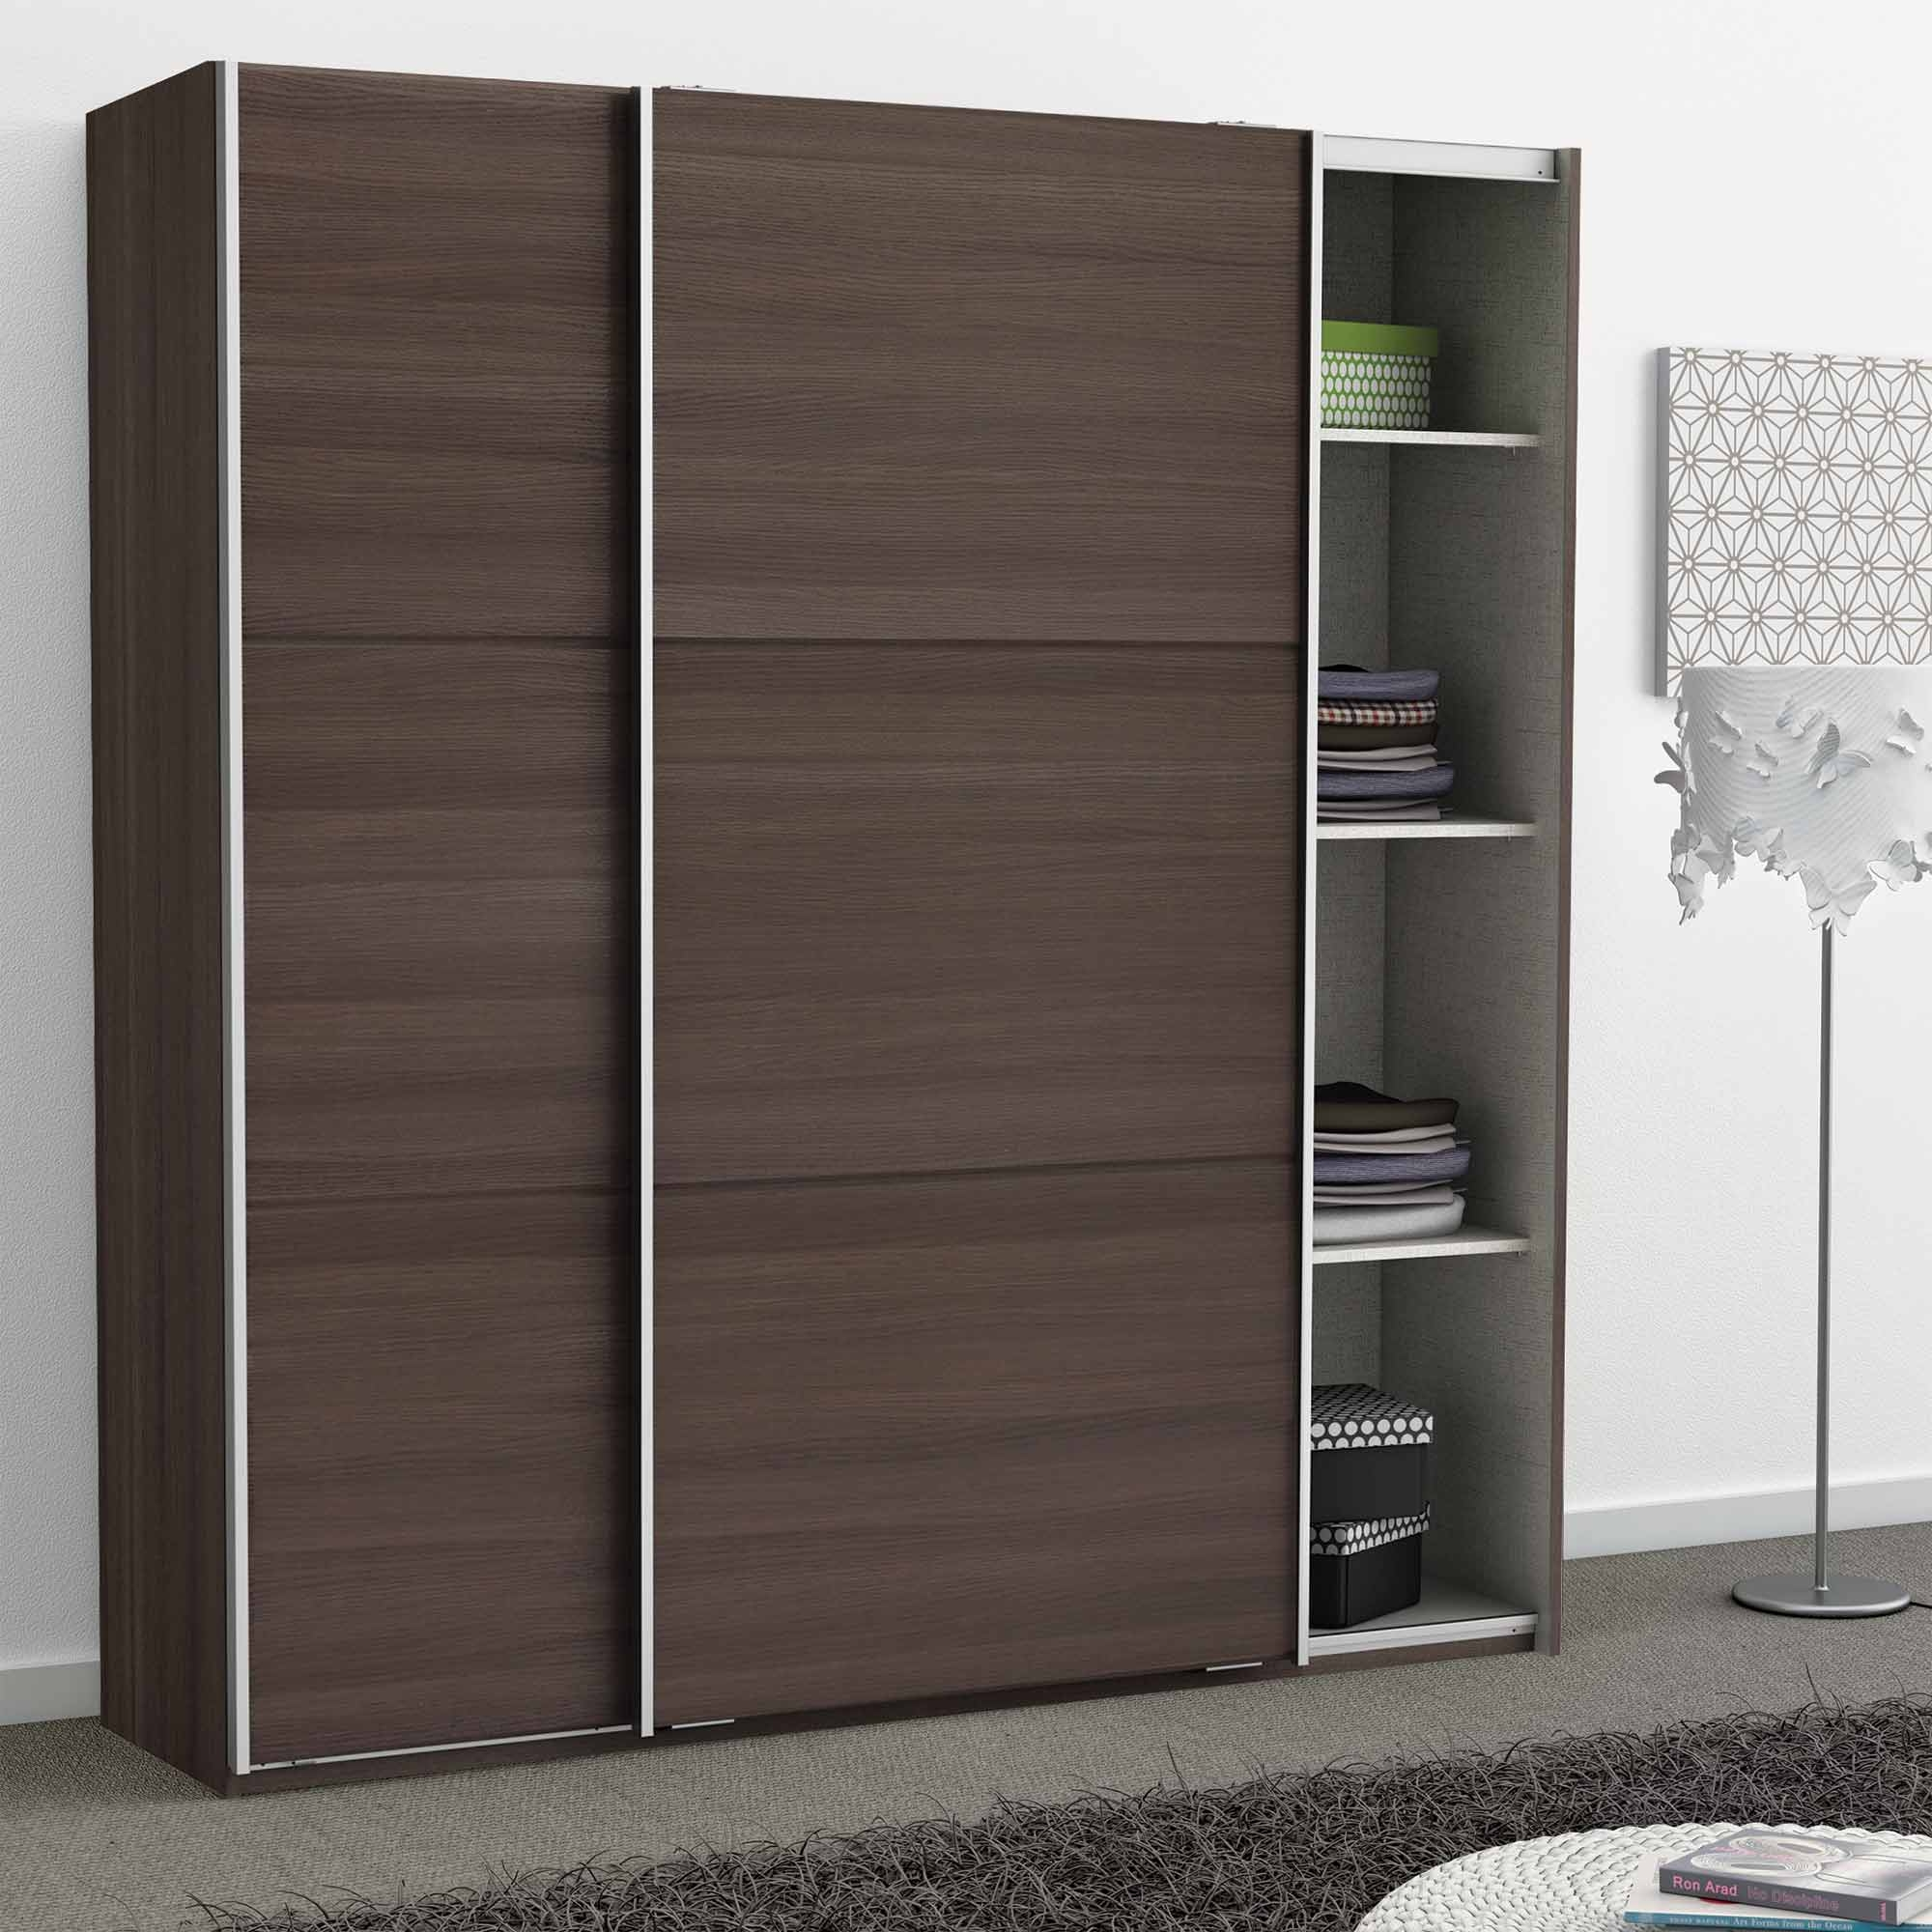 armoire en bois vulcano 2 portes coulissantes stella. Black Bedroom Furniture Sets. Home Design Ideas